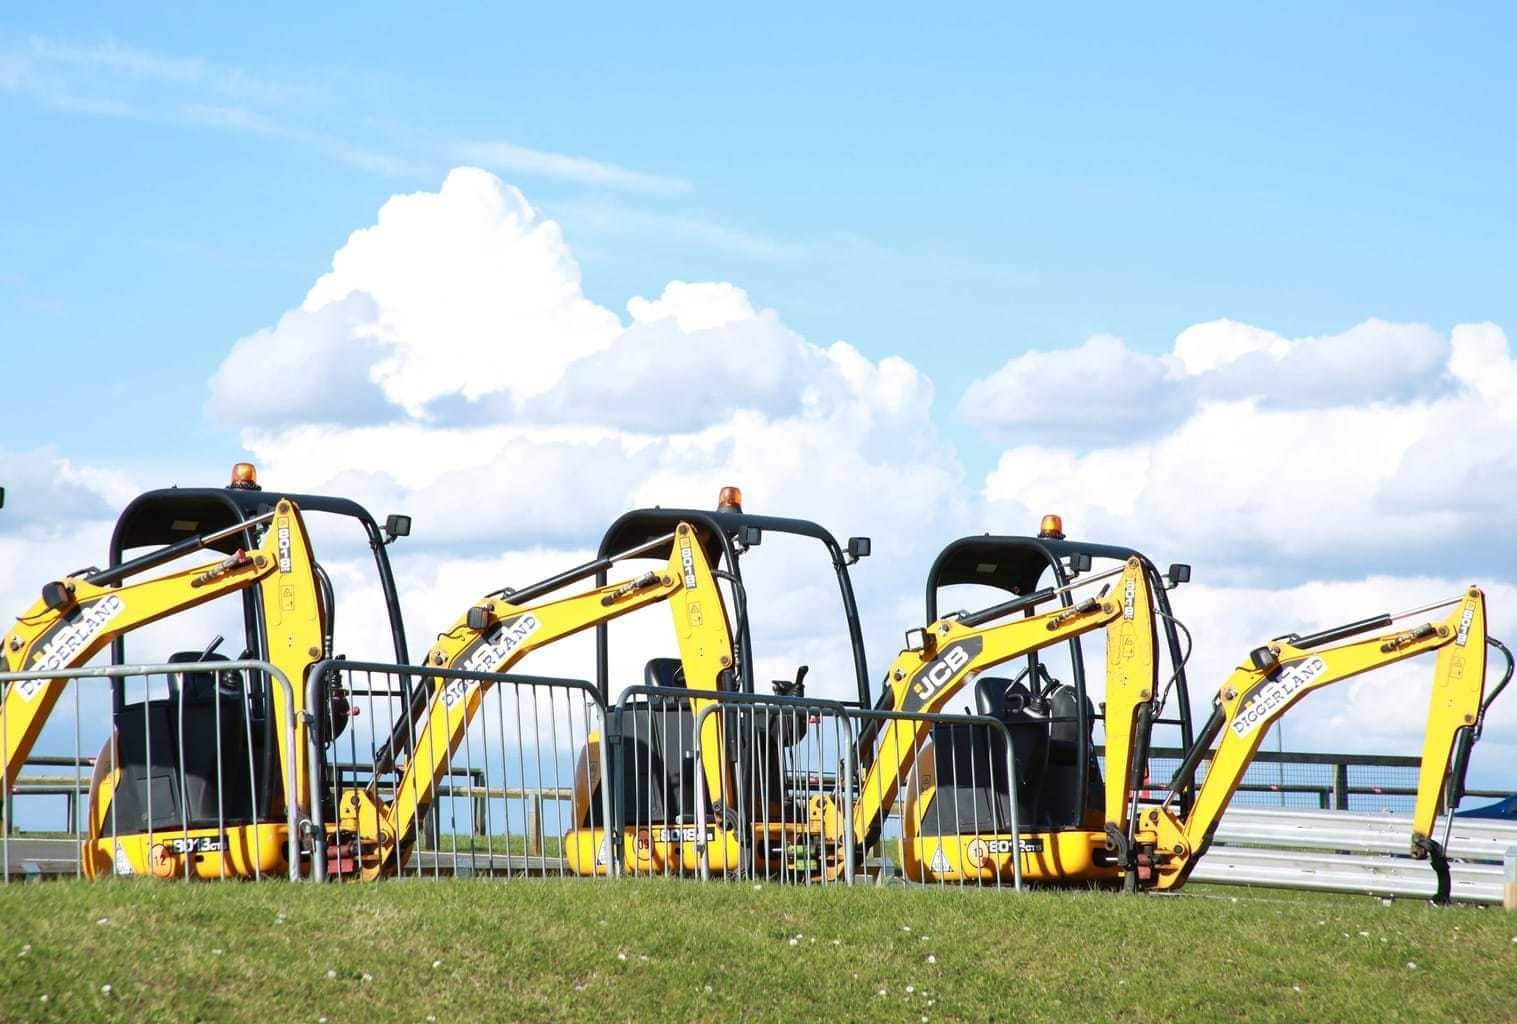 This was a shot taken at Brands hatch of some diggers working in the grounds. By Dpi Photography